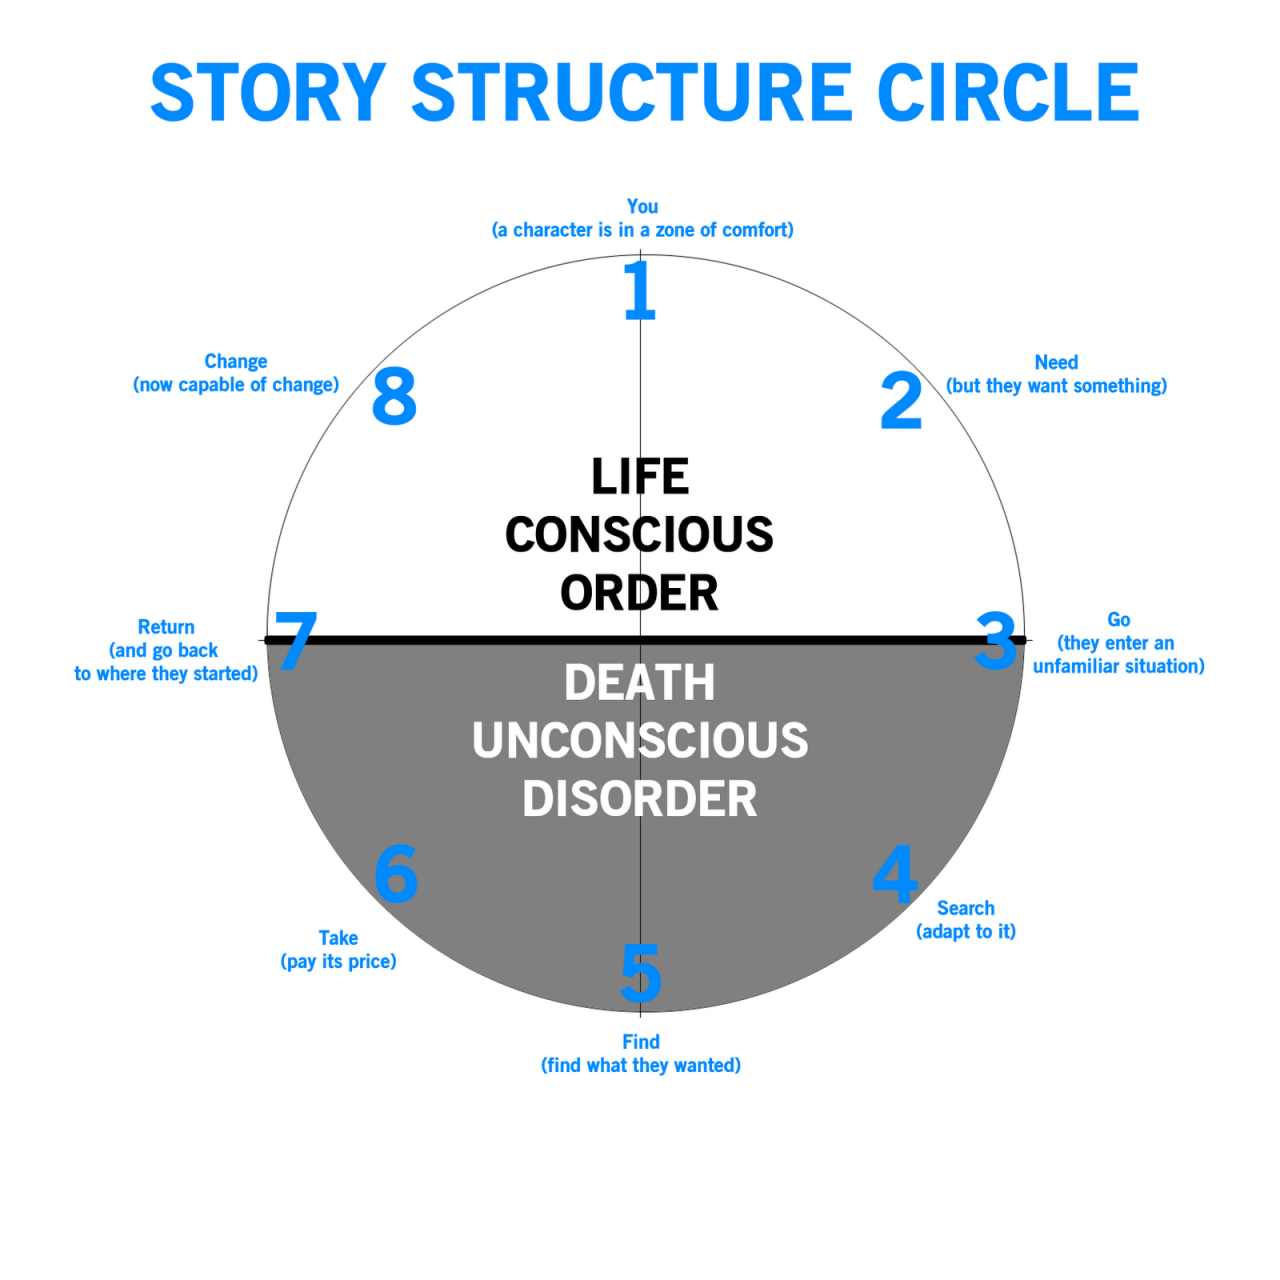 story-structure-cycle-infographic_1280.png